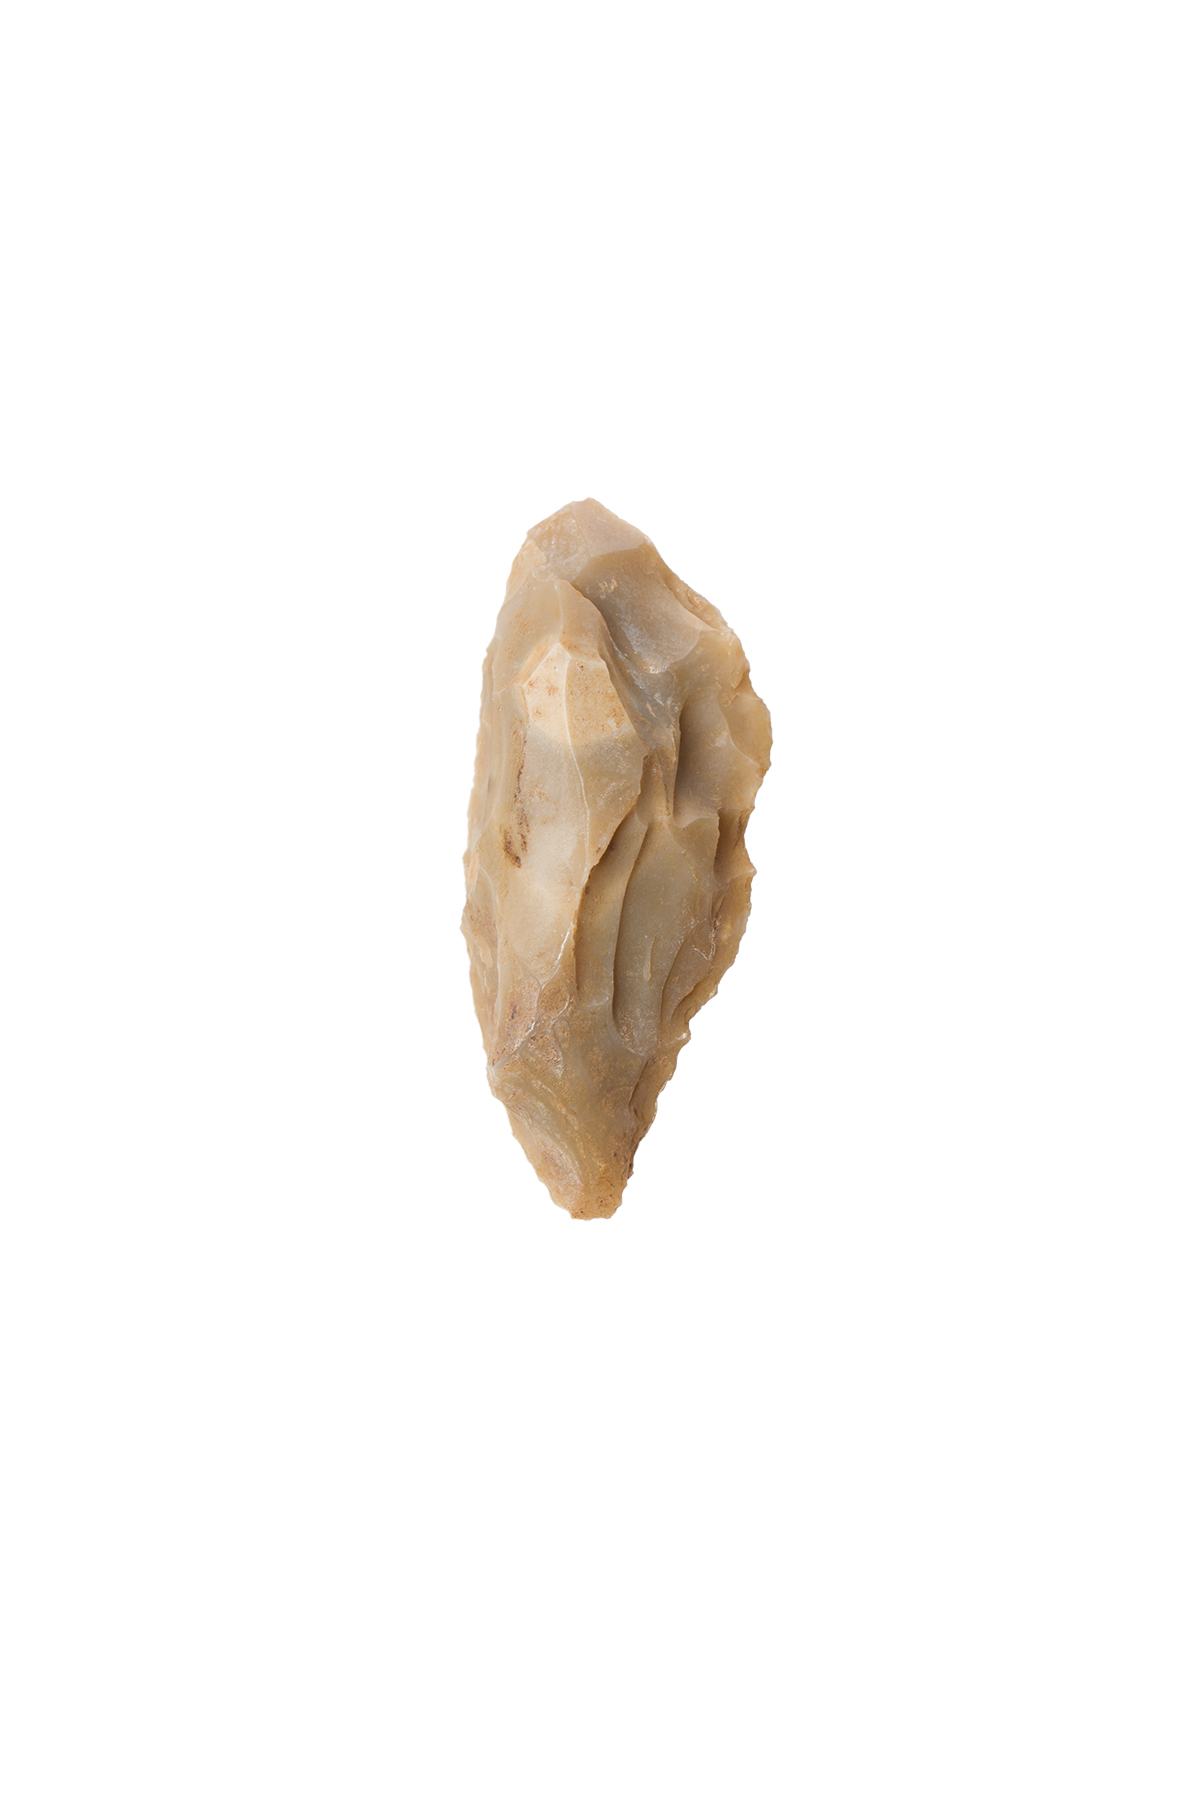 Long carenoid scraper, Bisceglie, caves S. Croce, Middle/Mousterian Palaeolithic Age